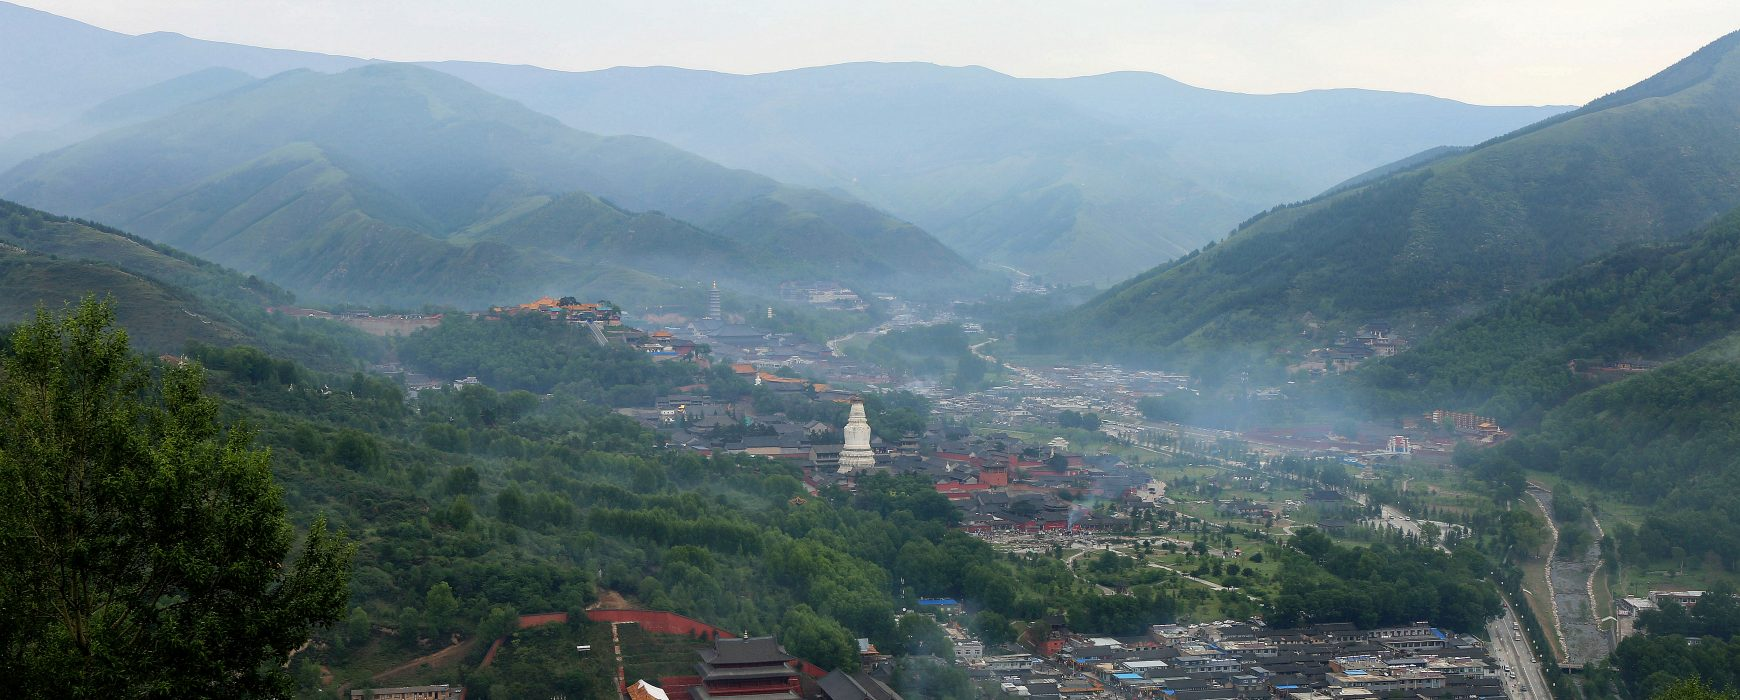 Call for Applications: An International and Intensive Program on Buddhism and East Asian Religions at Mount Wutai